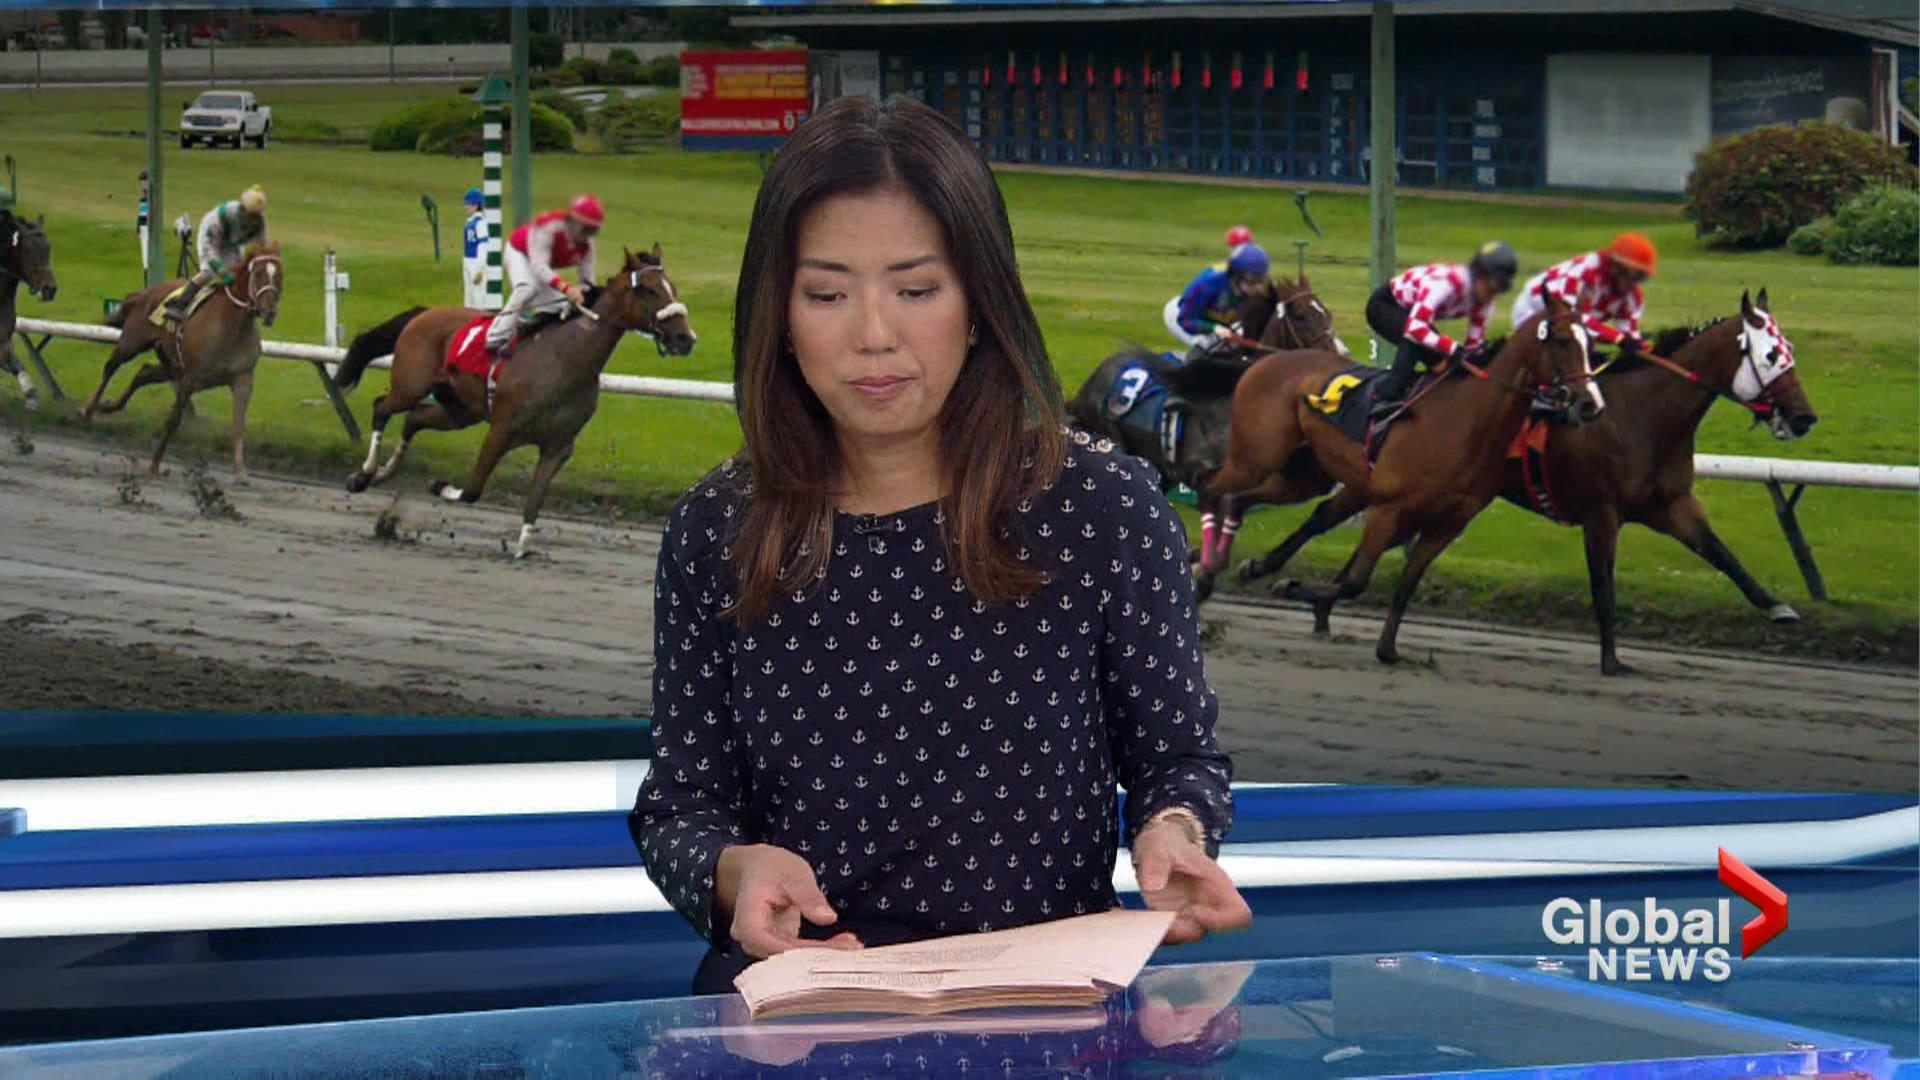 New developments in arrests at Hastings Racecourse